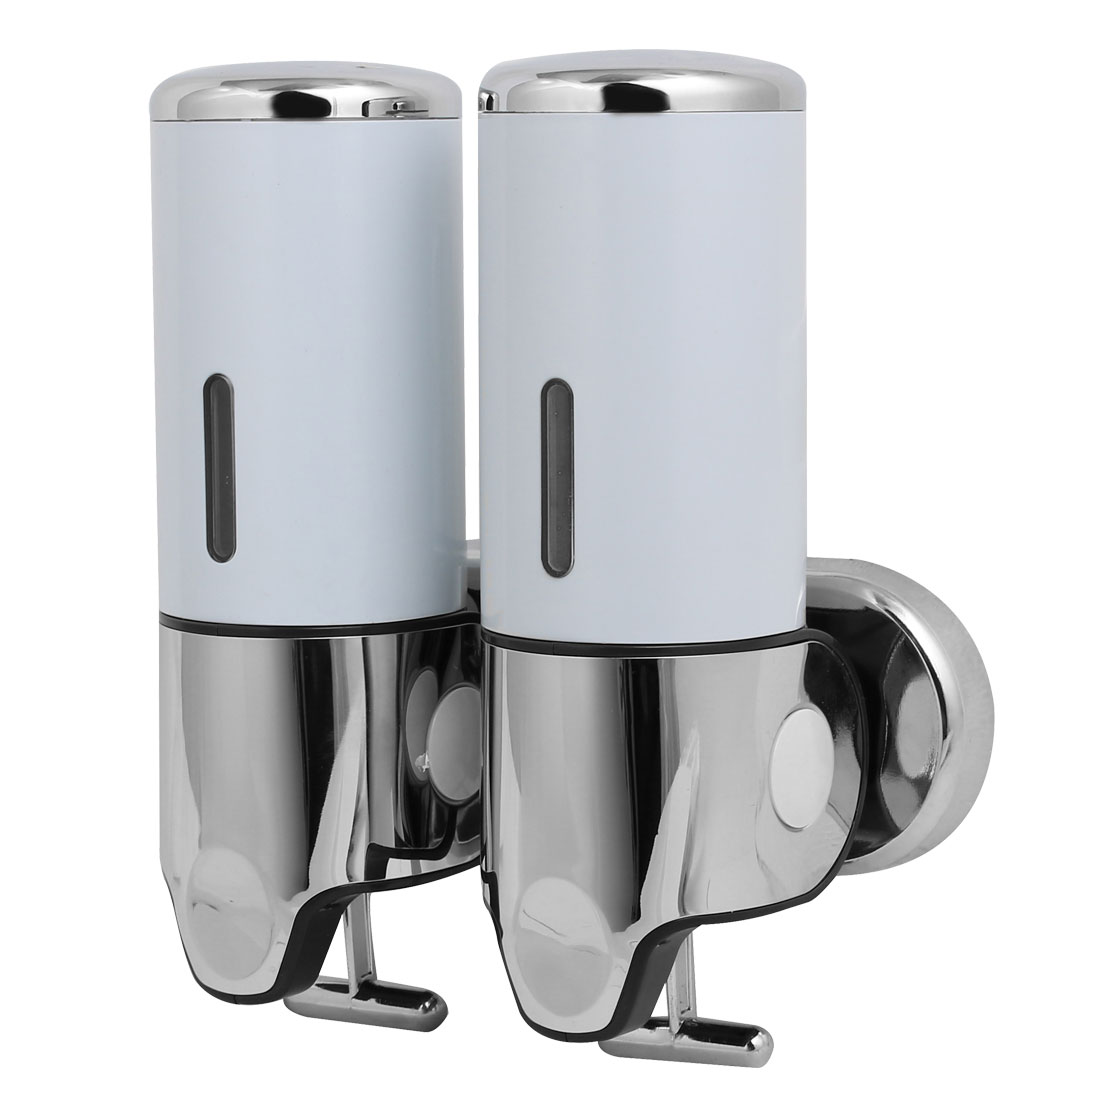 ABS Plastic Wall Mount Double Chember Soap Dispenser White, 17 oz Each Capacity